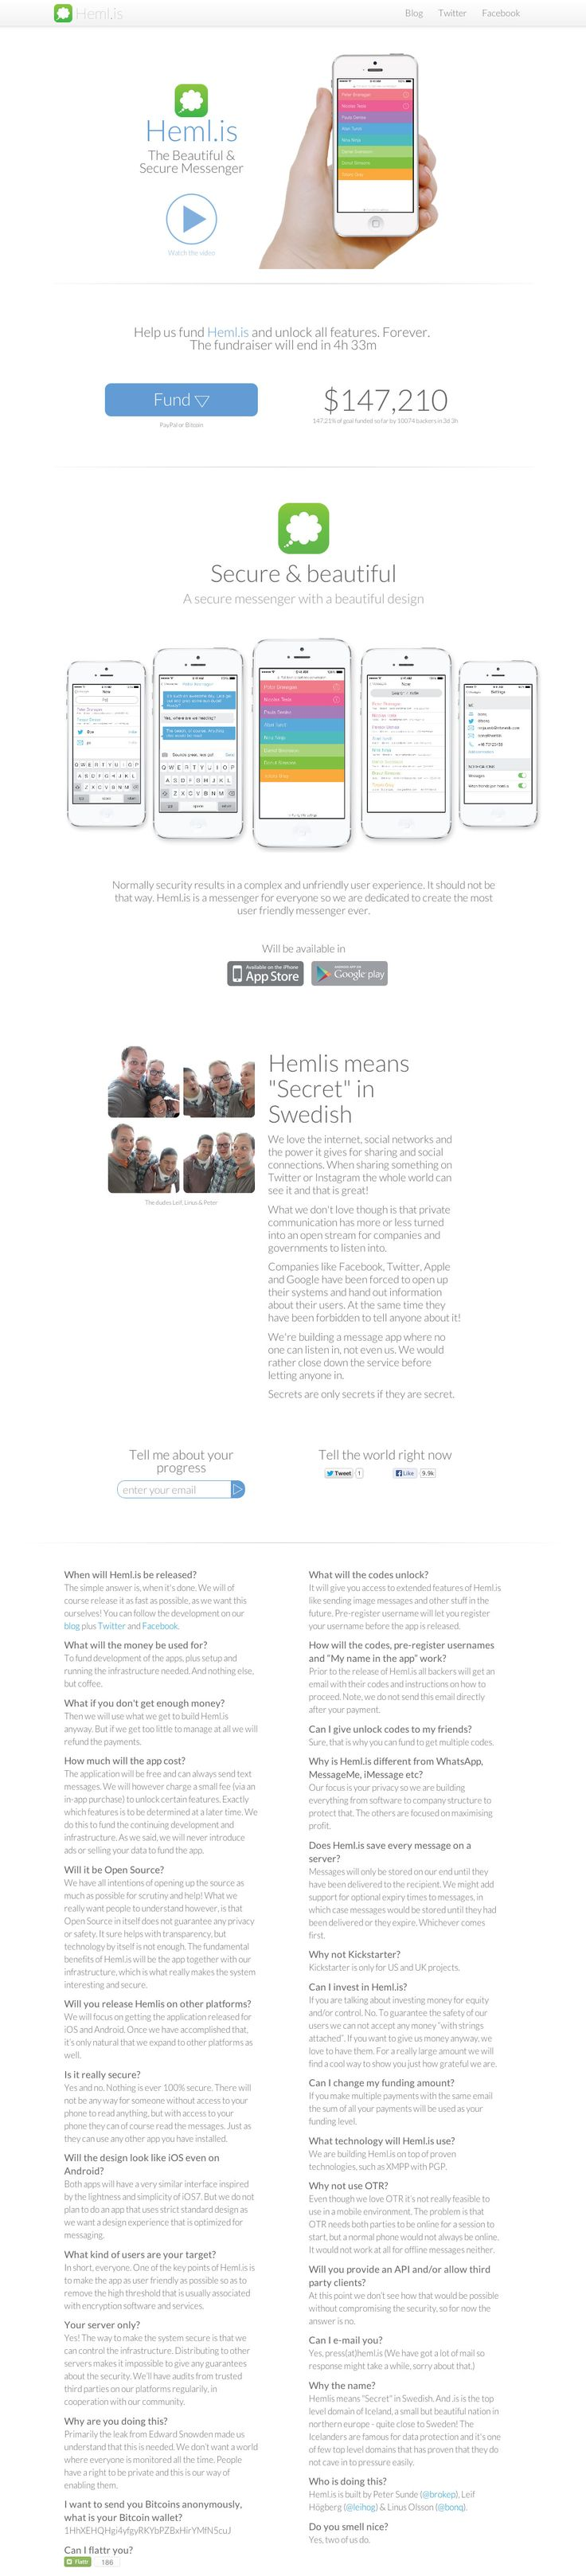 """Crisp responsive one pager aimed to raise funding for an upcoming messaging app called 'Hemlis' - that means """"Secret"""" in Swedish. This app promises to be completely secure and is brought to you by one of the master minds behind The Pirate Bay."""